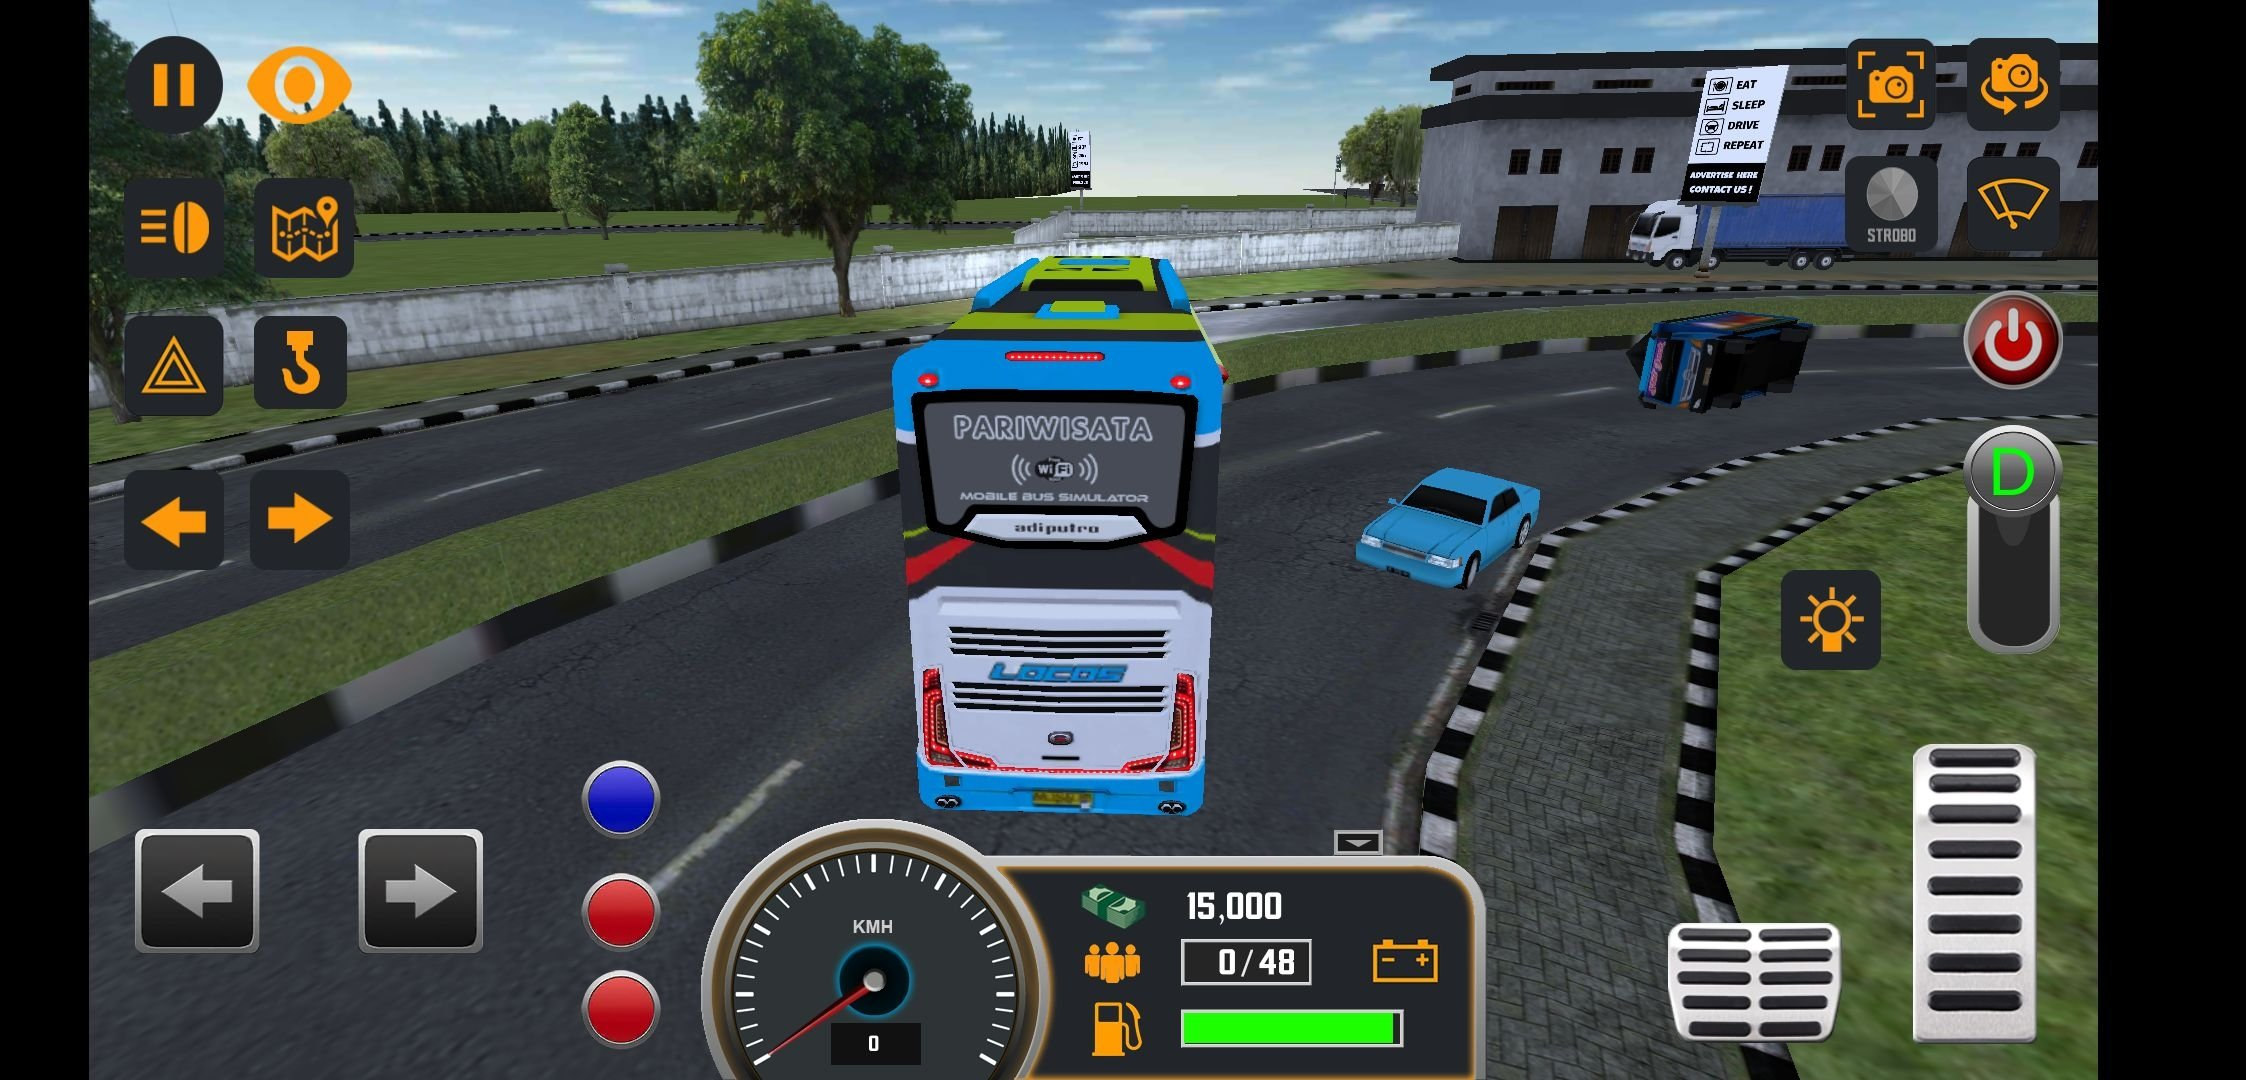 Mobile Bus Simulator 1.0.3 - Download for Android APK Free